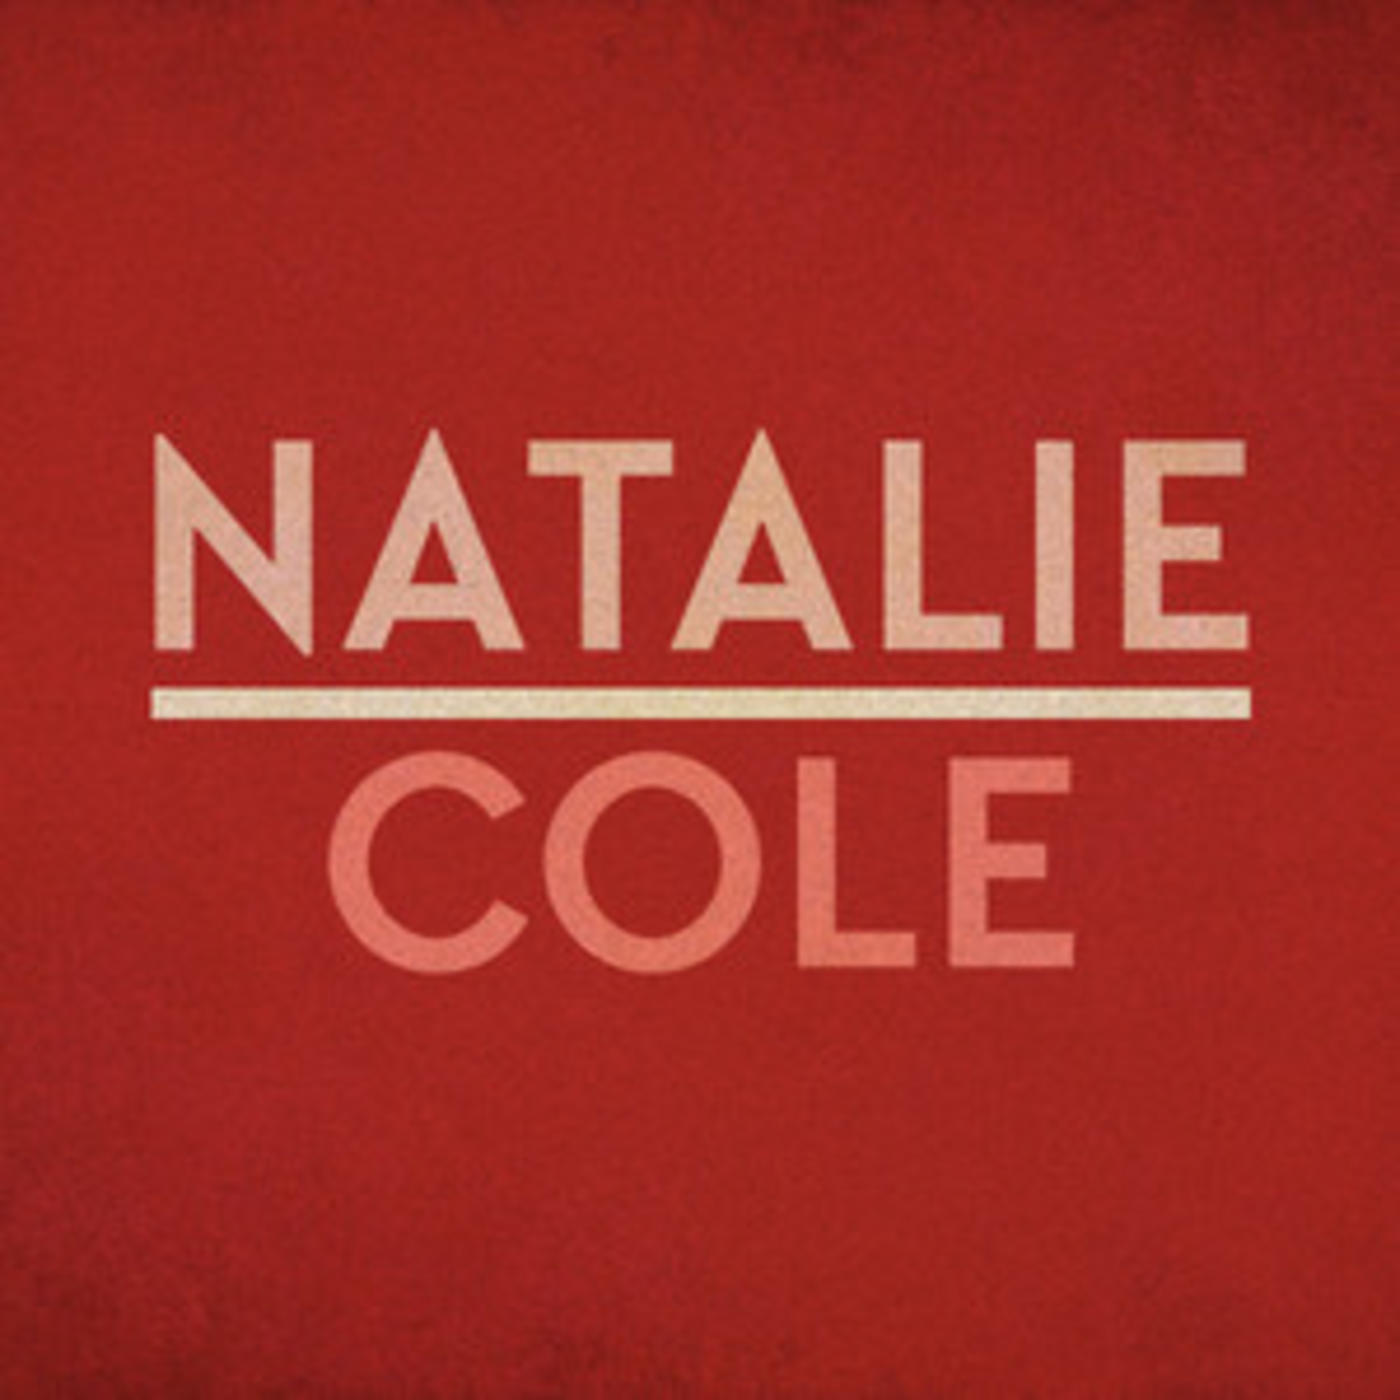 Natalie Cole - Official Playlist - This Will Be (An Everlasting Love), Our Love Is Here To Stay